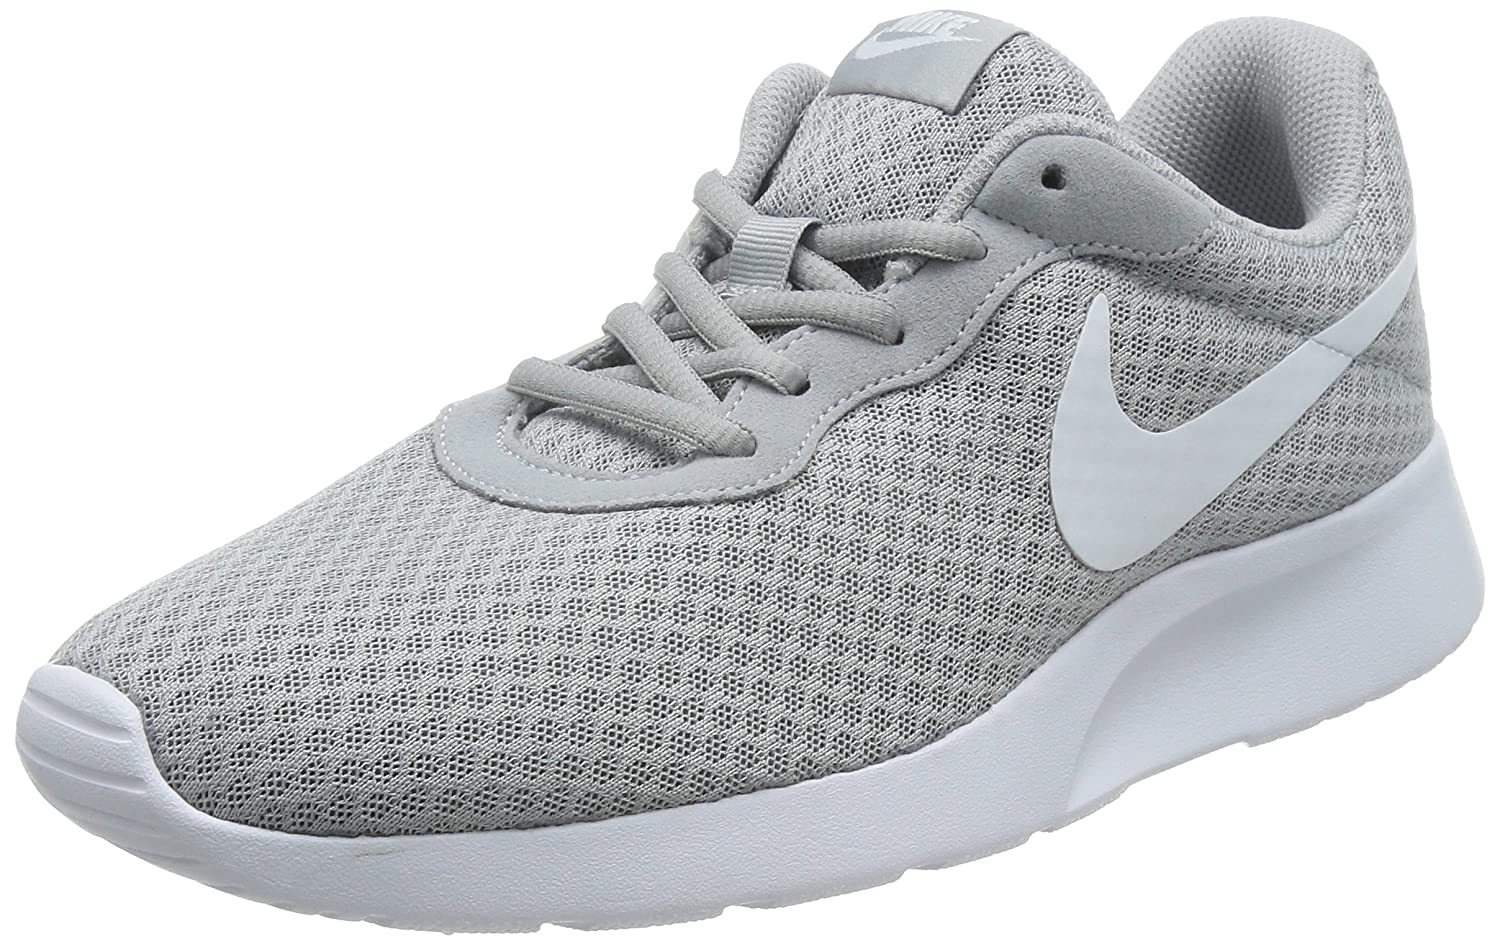 Nike Men s Tanjun Running Shoes  Buy Online at Low Prices in India -  Amazon.in 3a1e4c057f7